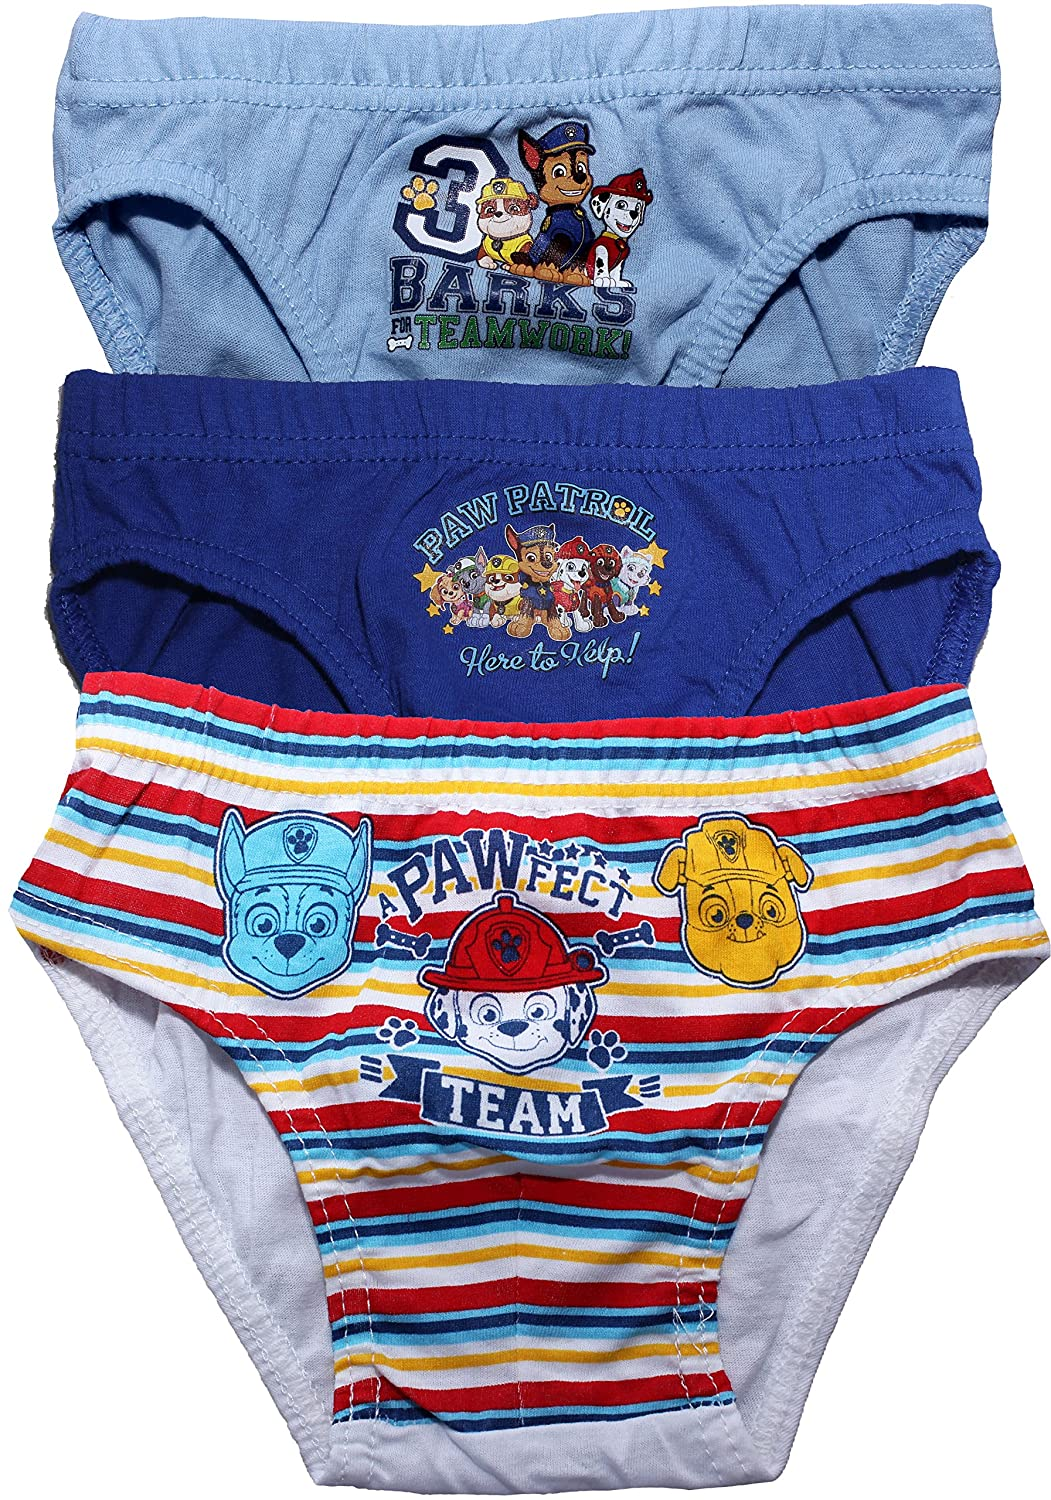 Paw Patrol Boys Marshall Childrens 3 Pack Underwear Briefs Set